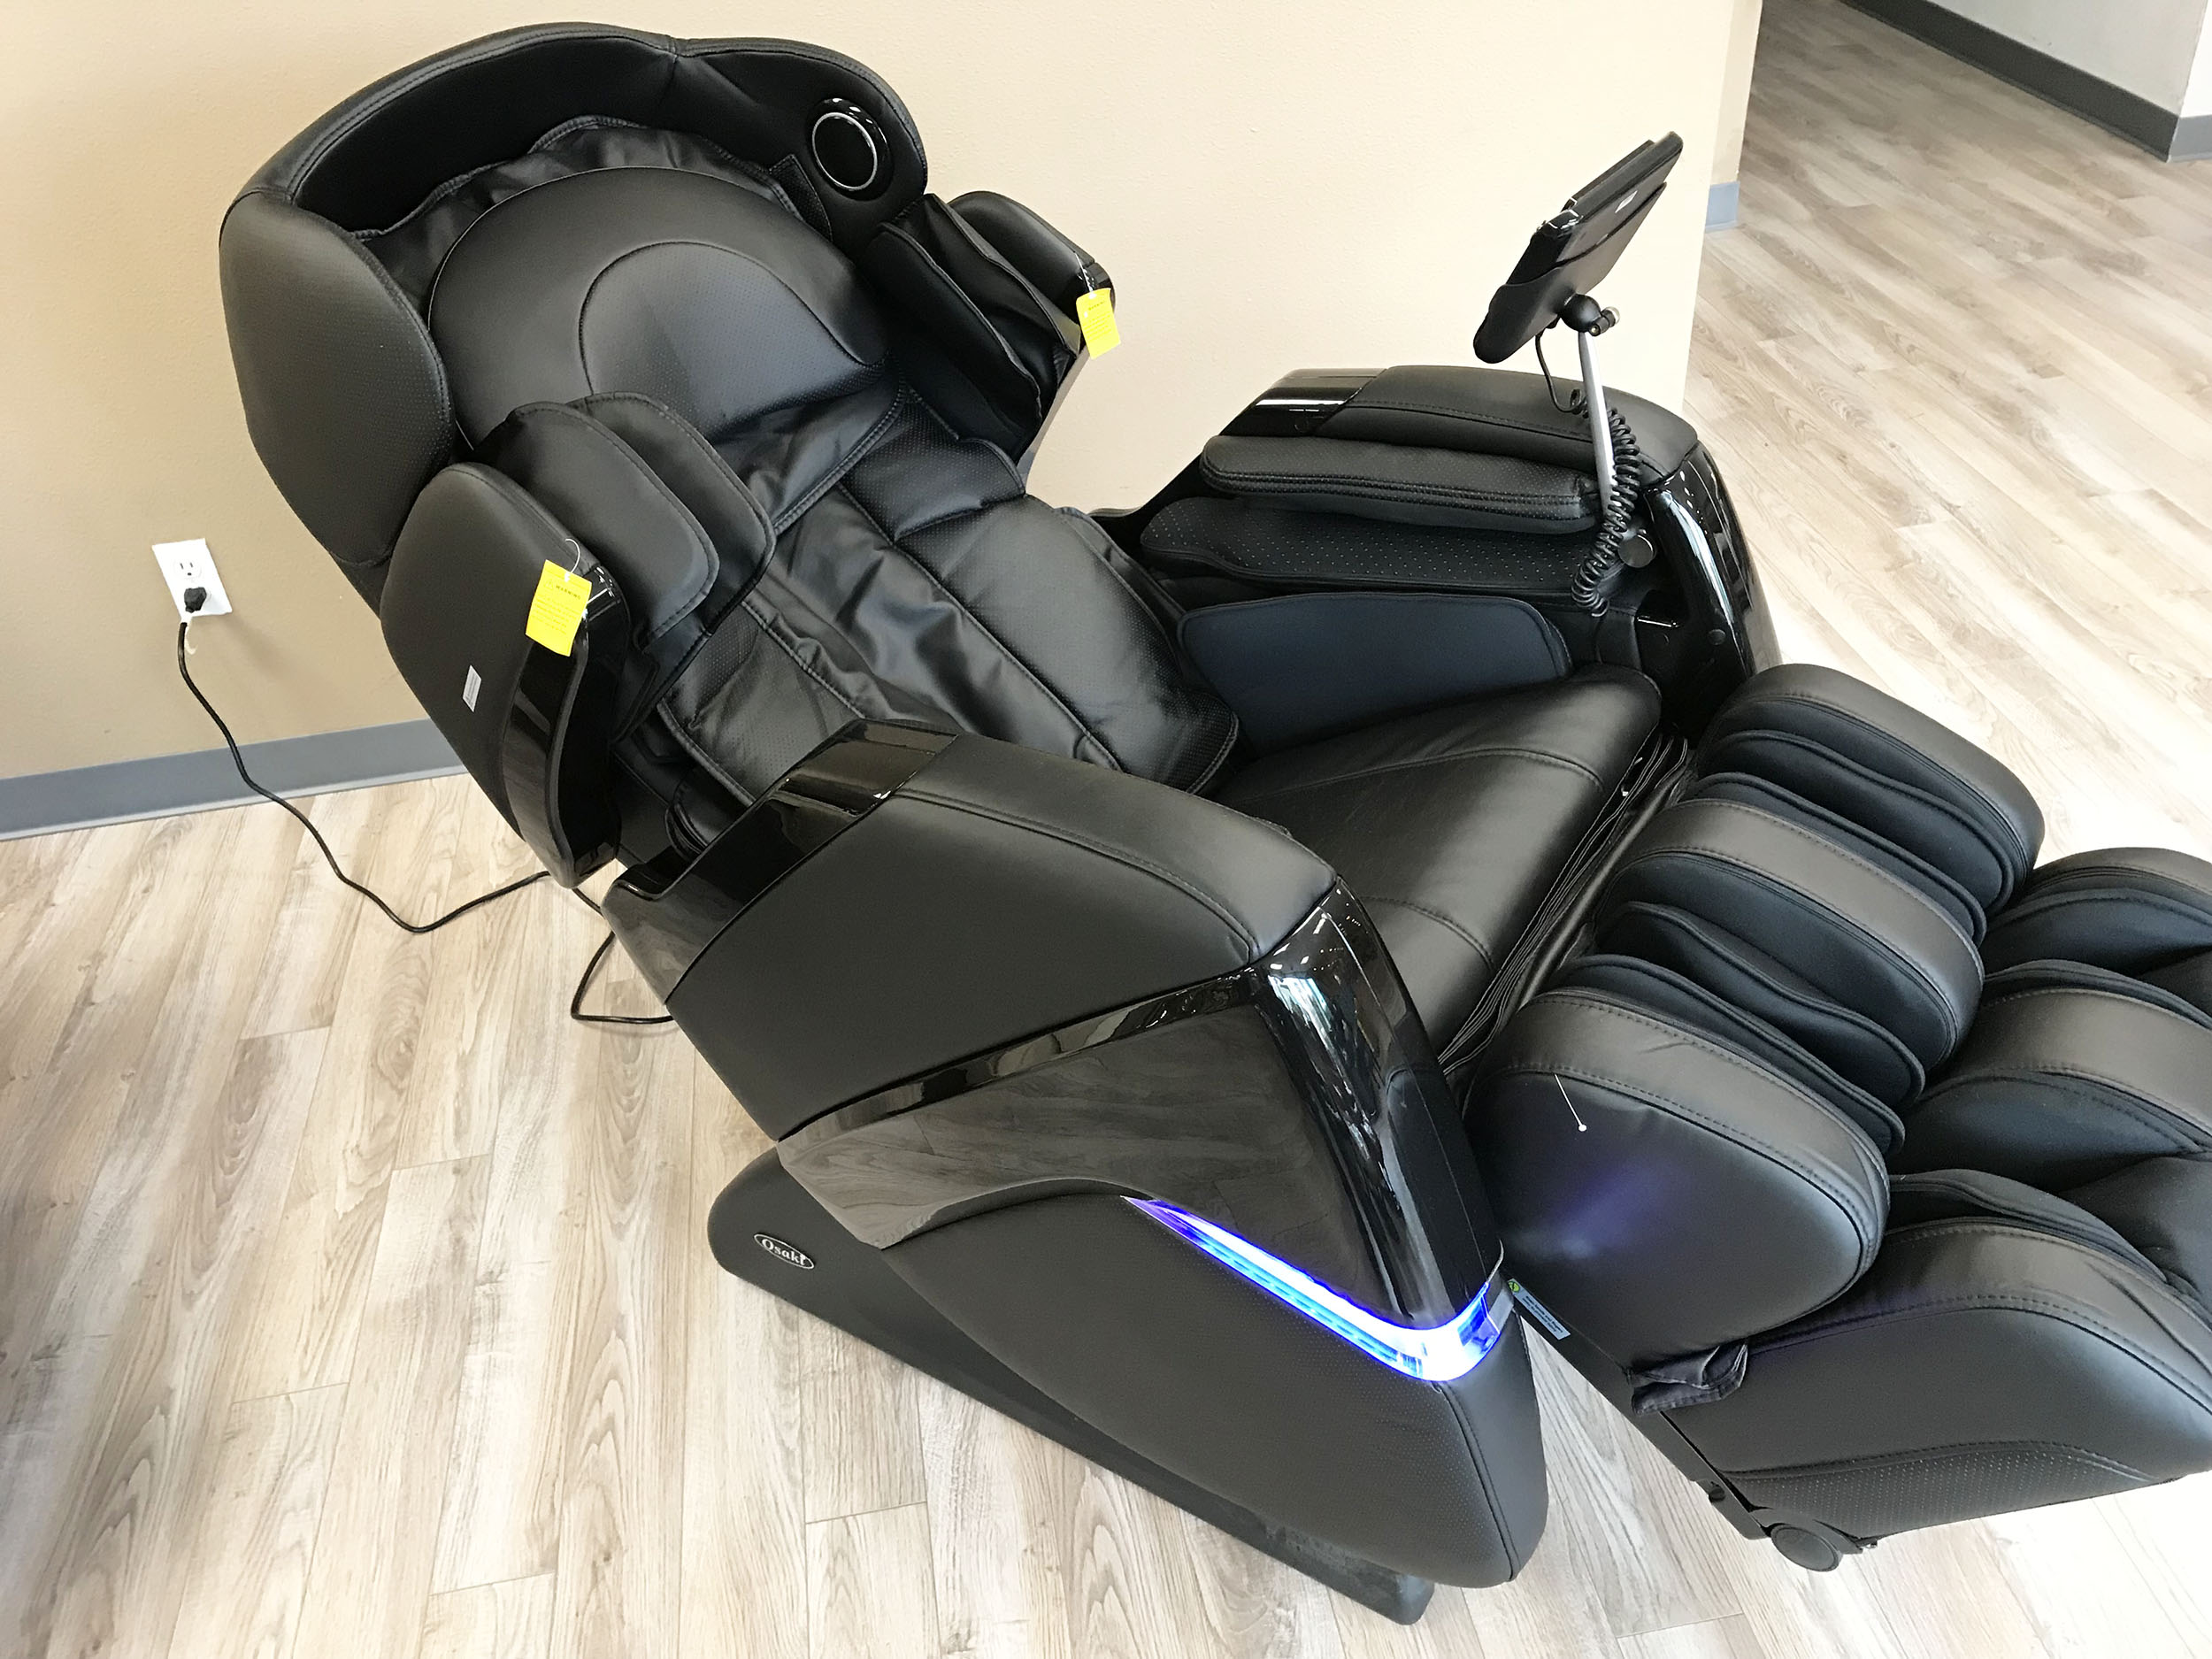 osaki os 3d cyber pro massage chair dining table and chairs zero gravity recliner